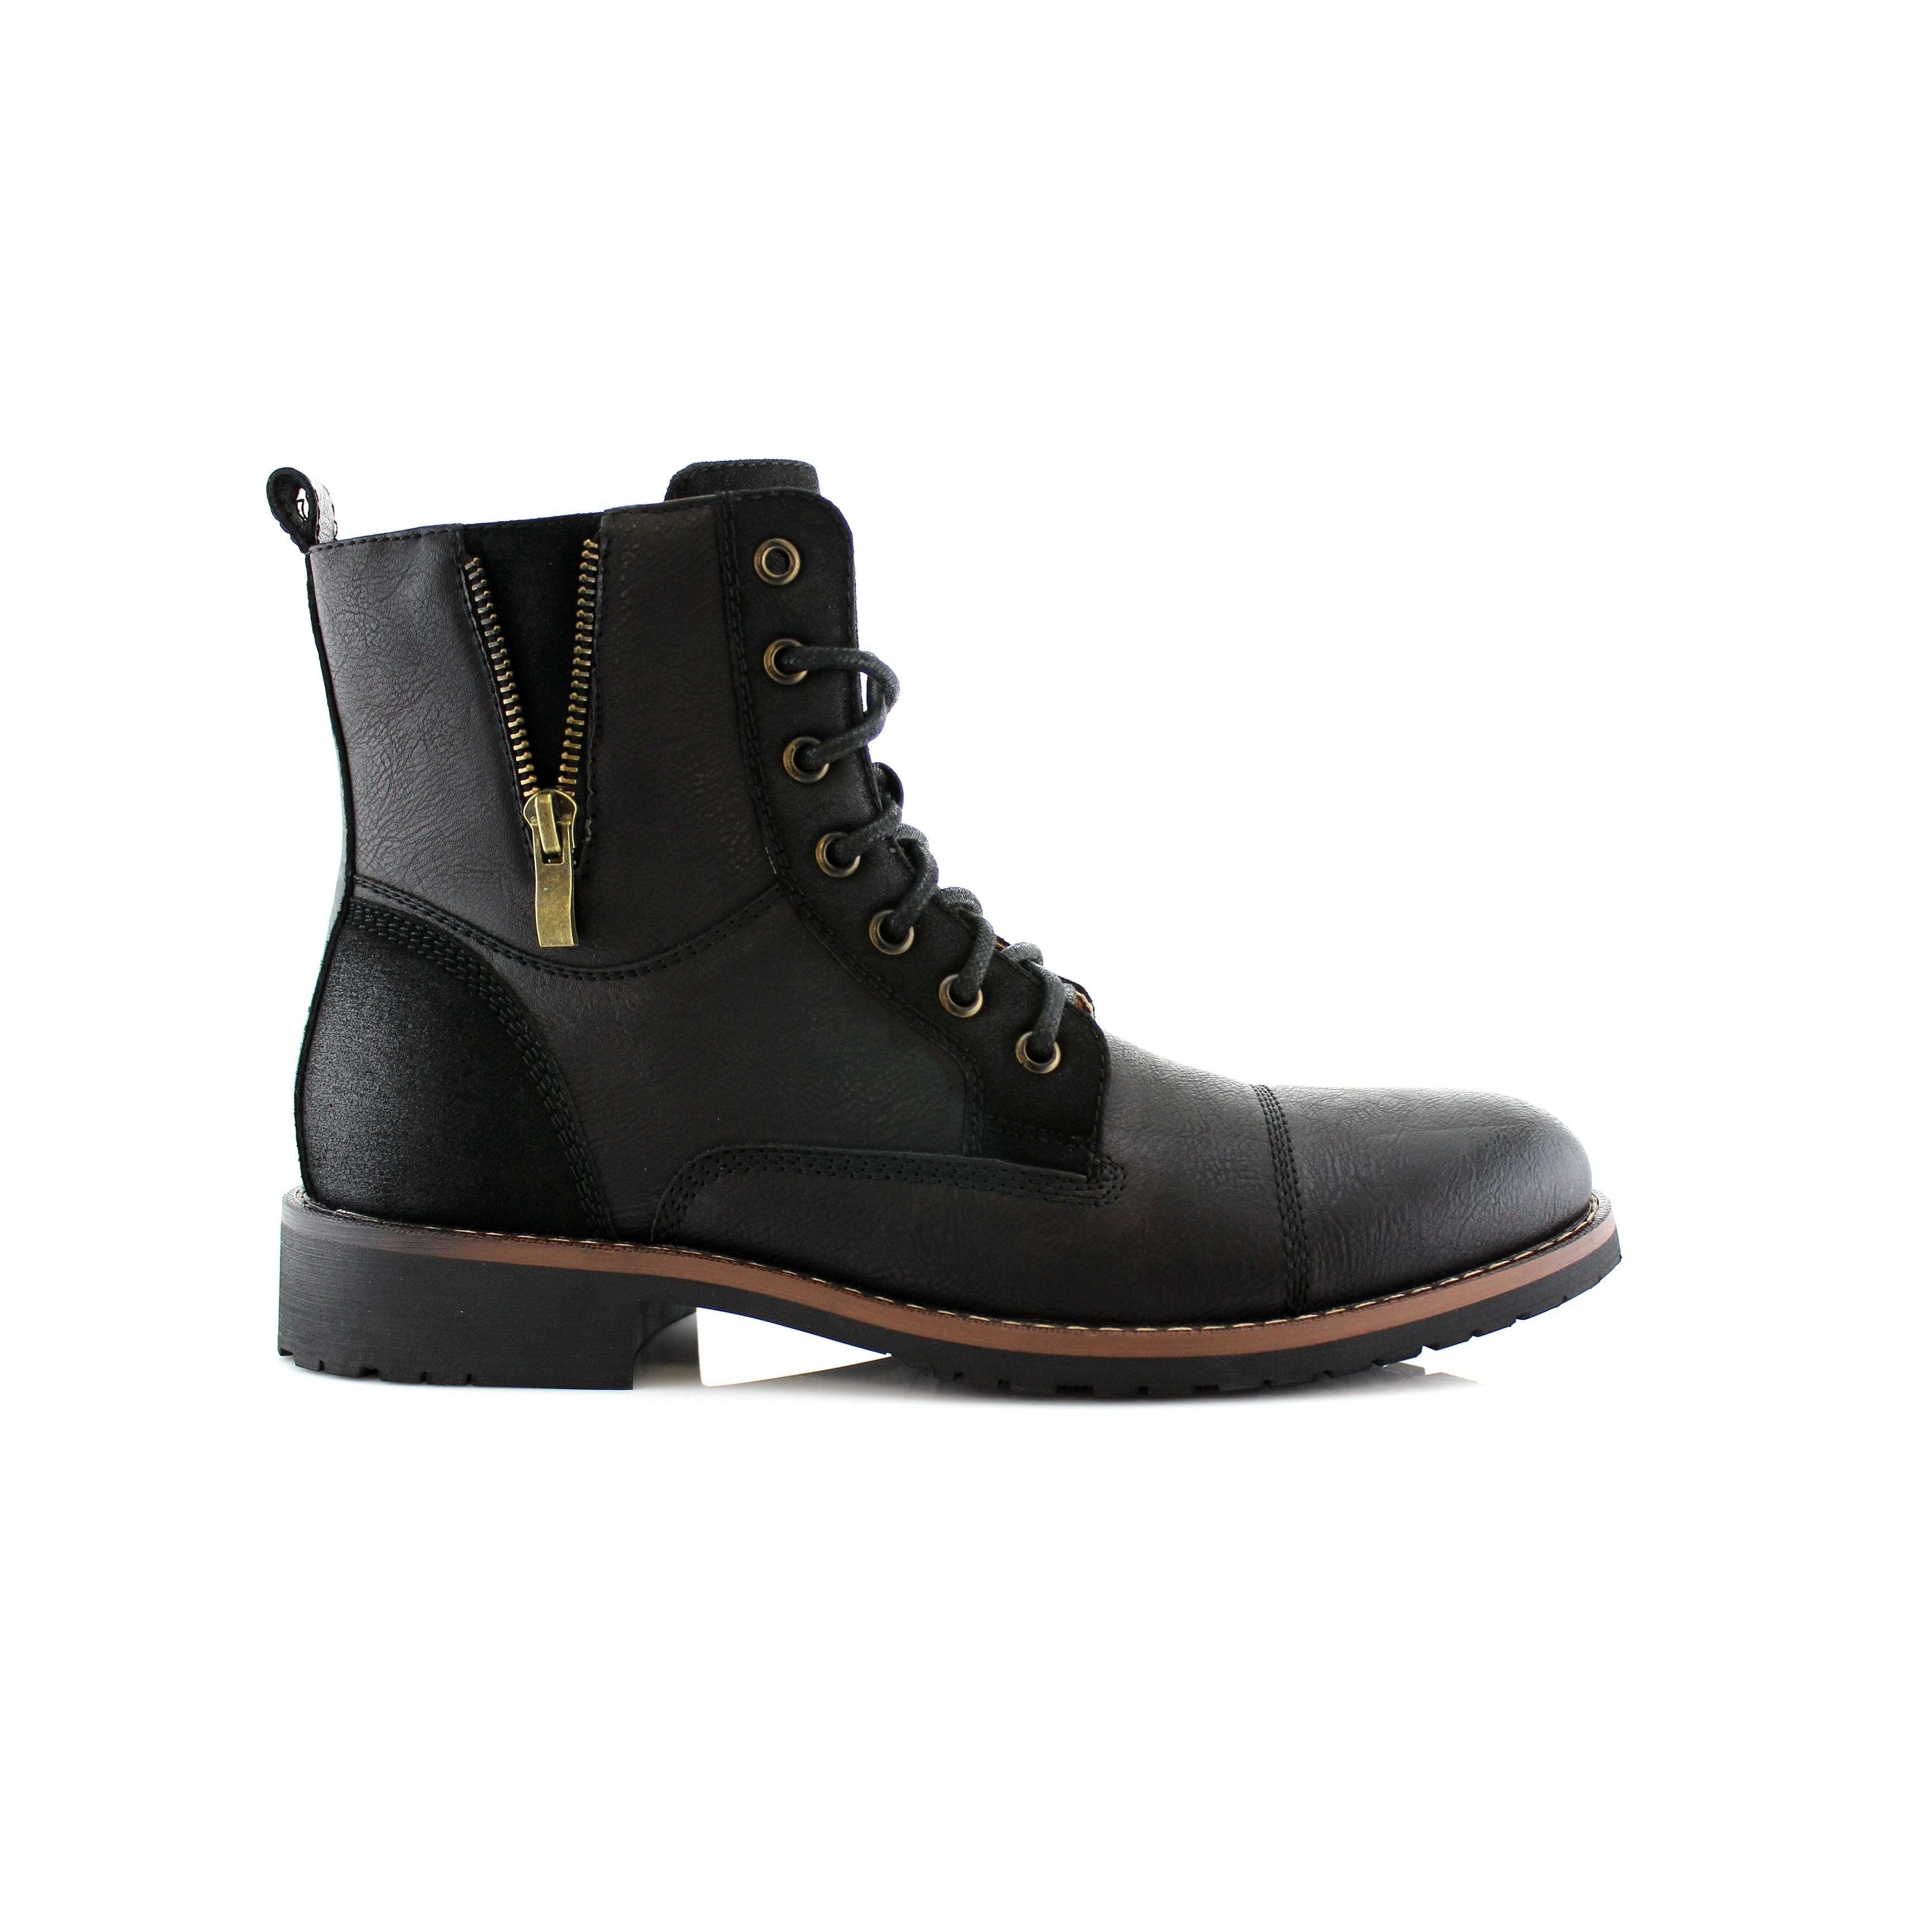 82297a3a7d Shop Ferro Aldo Reid MFA808561B Men's Combat Boots For Work or Casual Wear  - Free Shipping Today - Overstock - 17743672